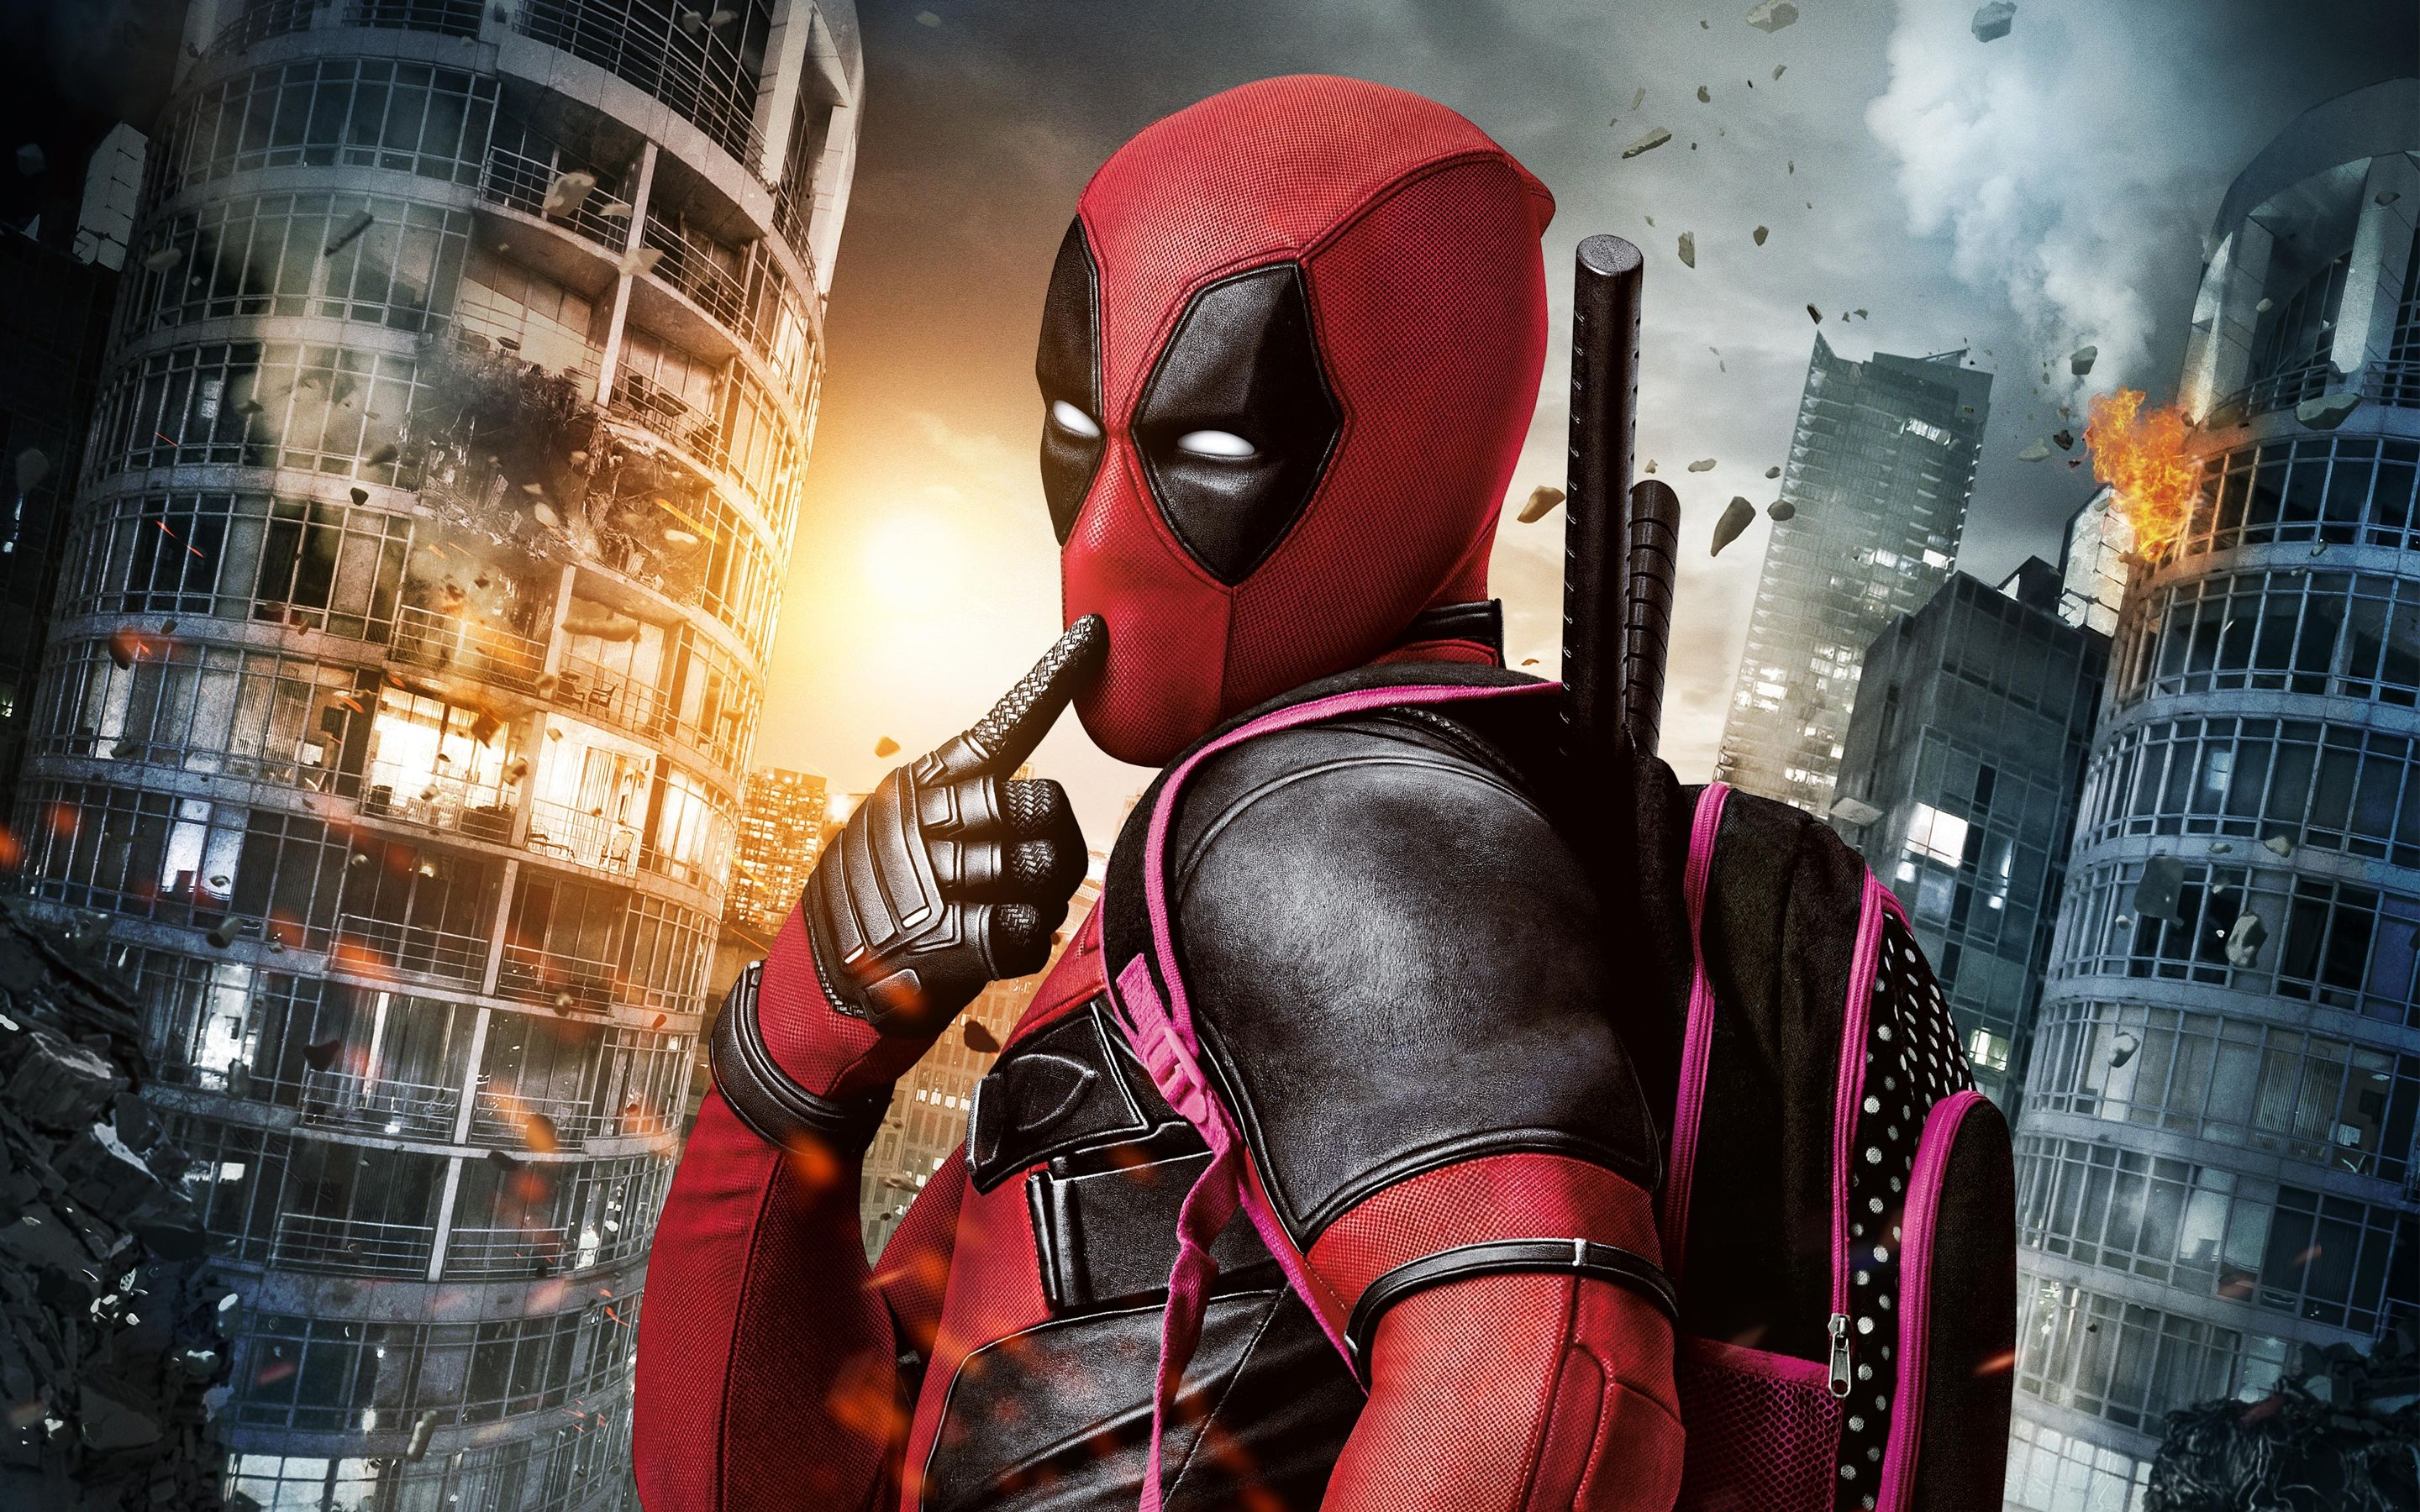 Deadpool Movie Wallpaper Marvel Deadpool Movie Wallpapers Hd